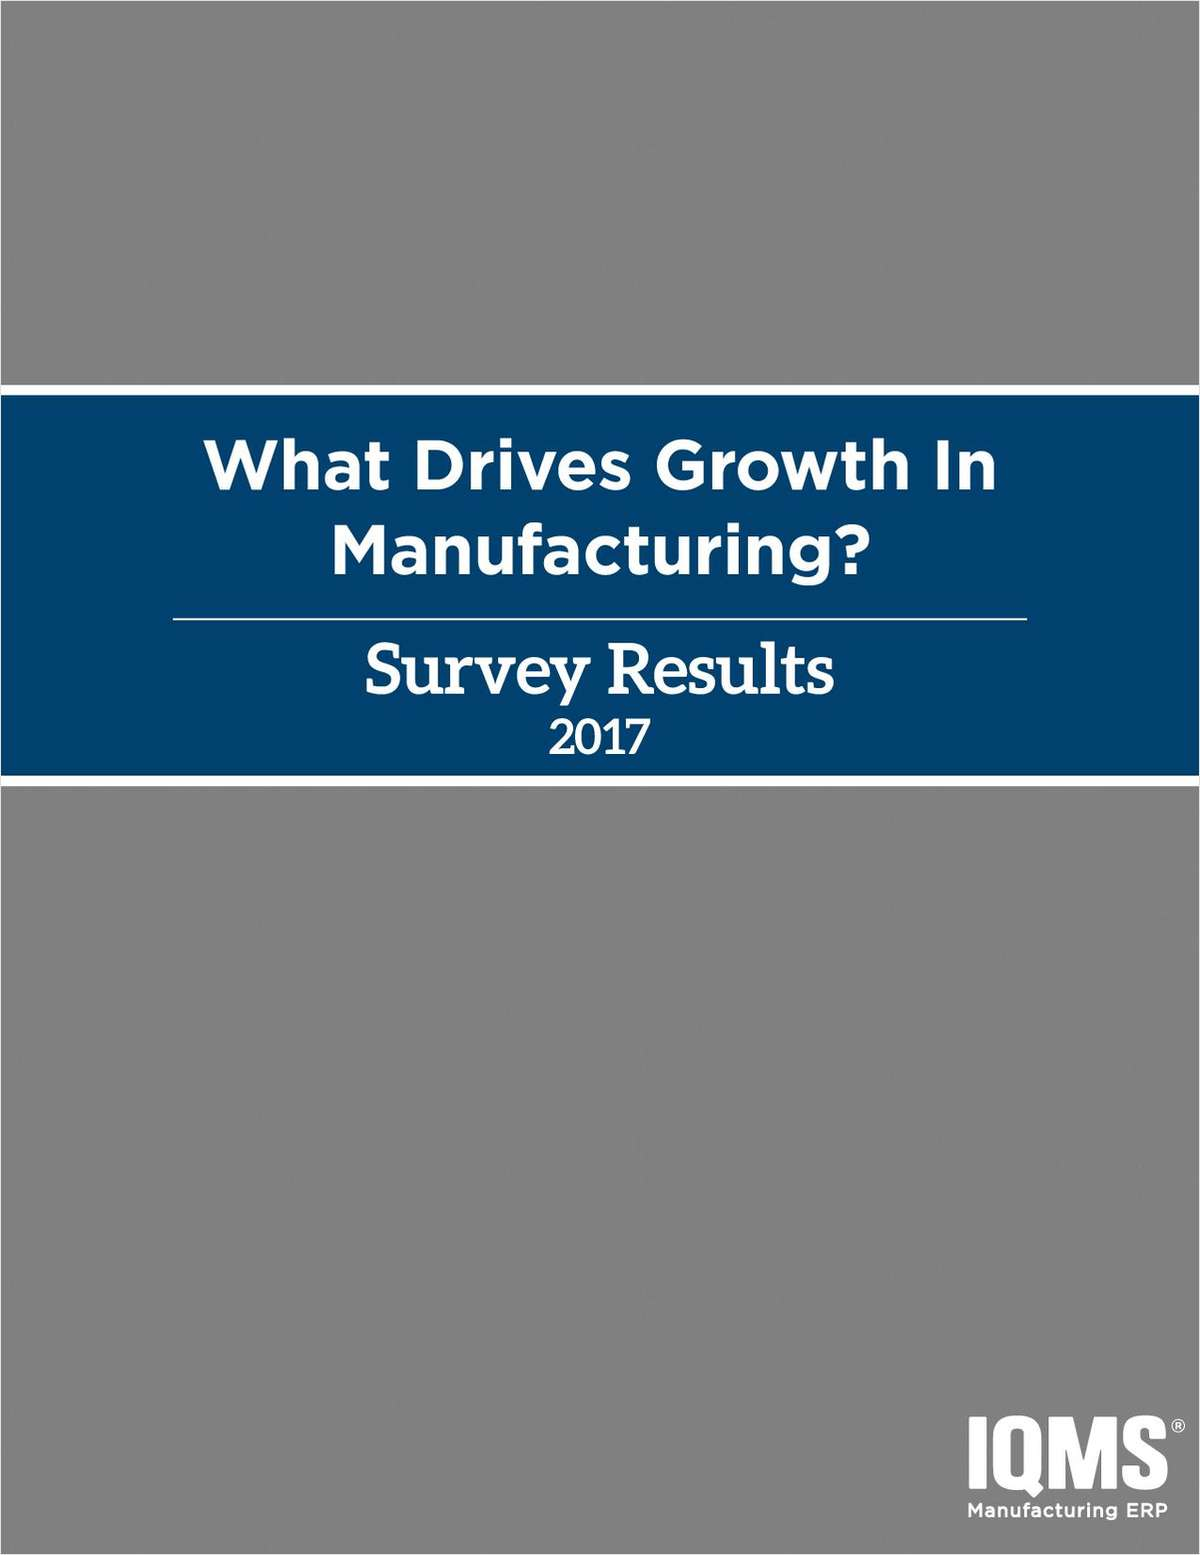 What Drives Growth in Manufacturing?